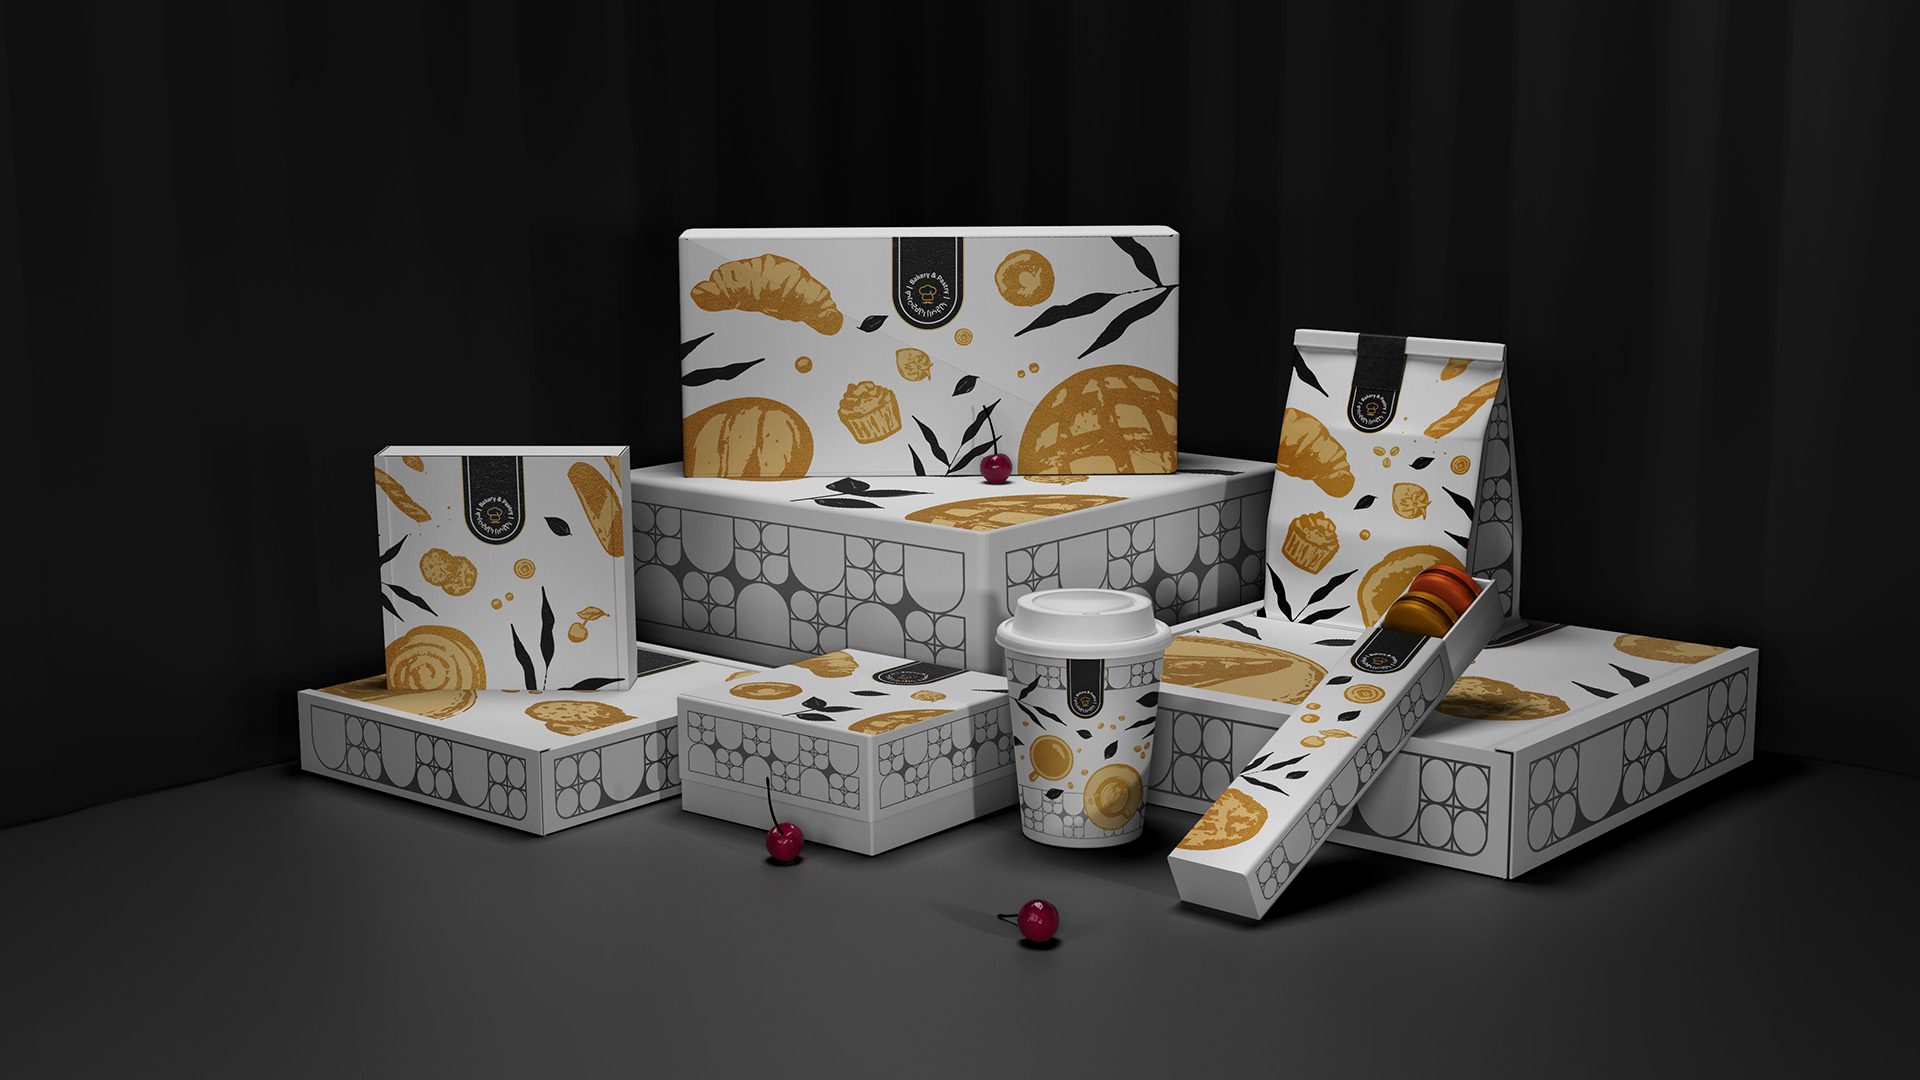 Packaging Design for a Saudi Arabian Bakery and Pastry